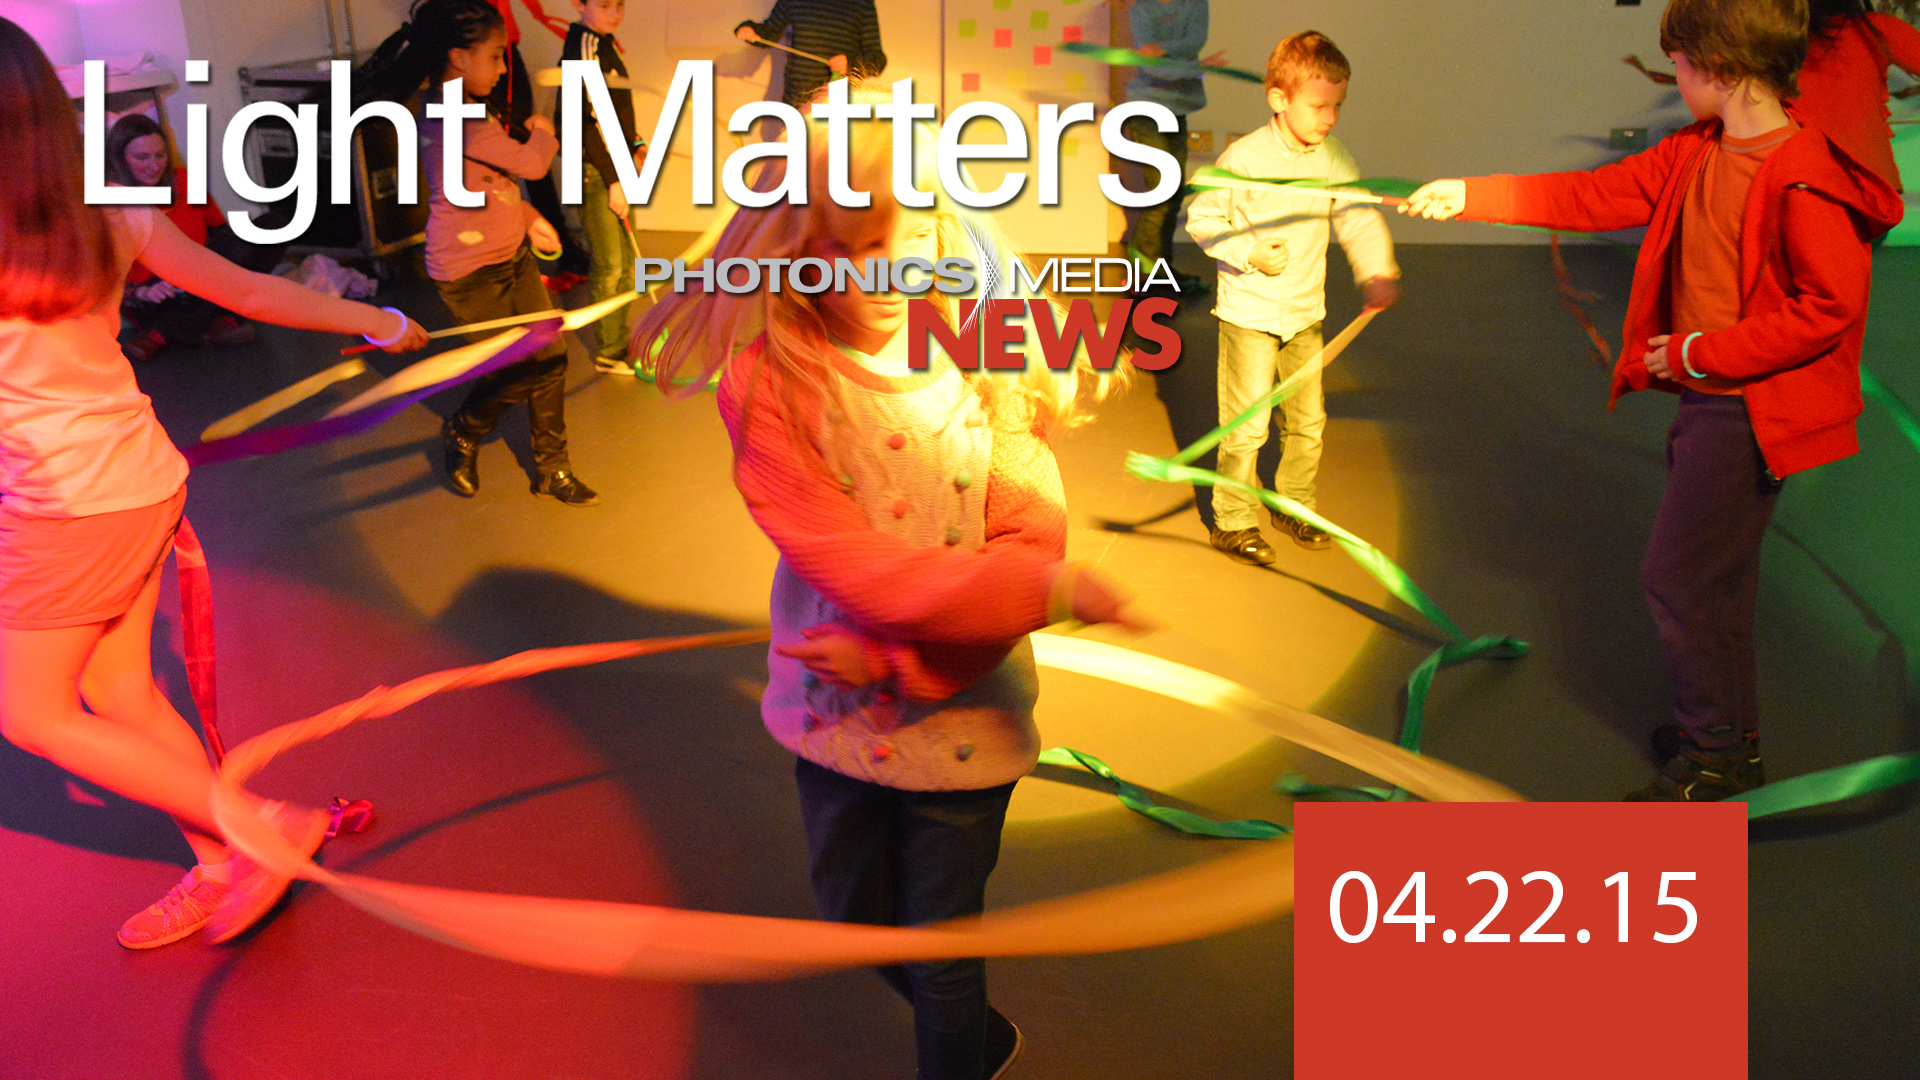 Dancing Like a Photon - LIGHT MATTERS 04.22.15